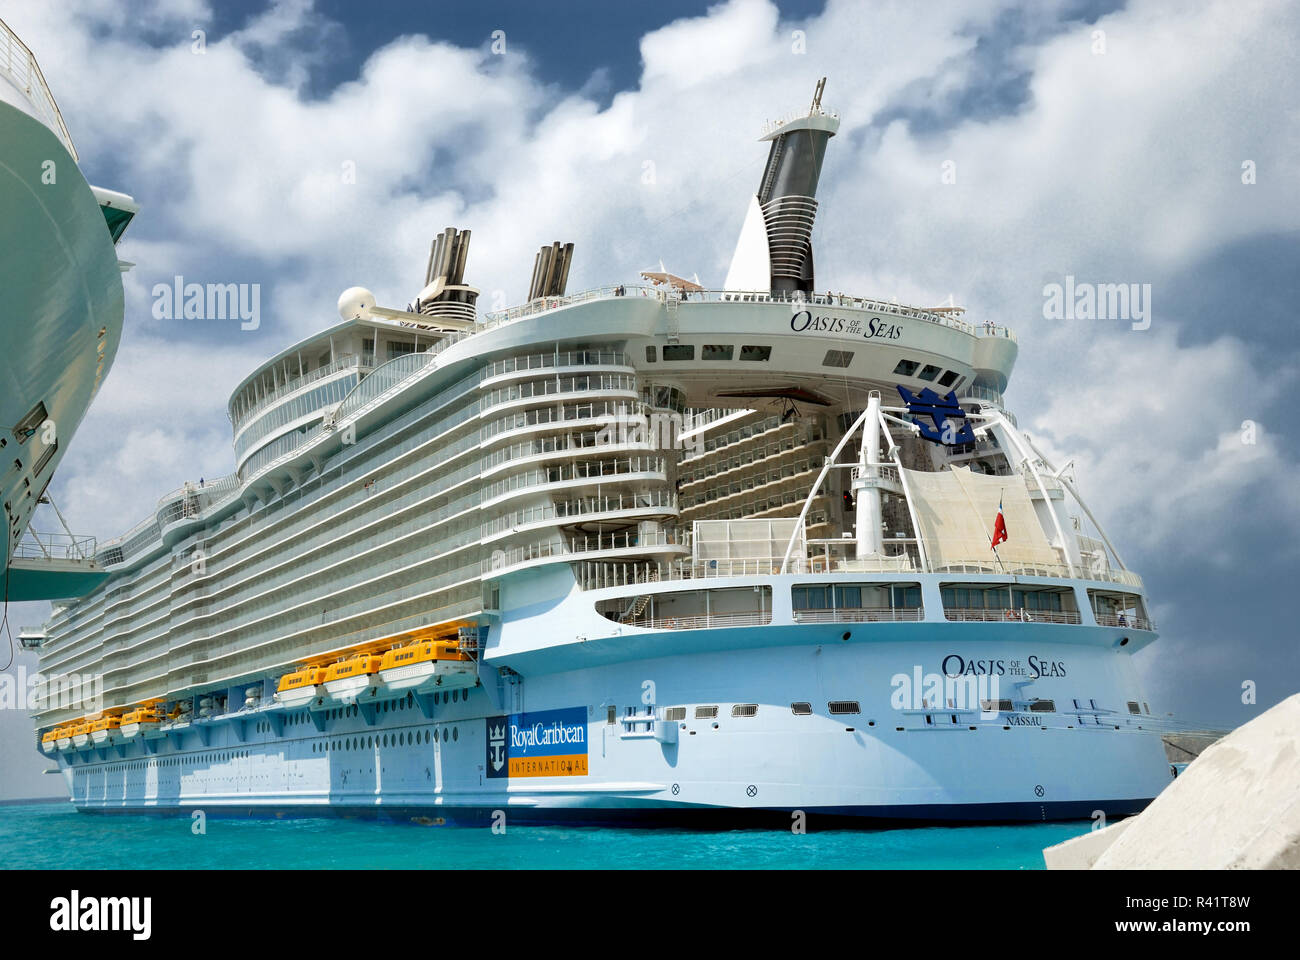 Oasis of the Seas, docked at St. Maarten.  The aft of the ship incorporates an outdoor aqua theatre where high dive shows are performed.  Also visible - Stock Image